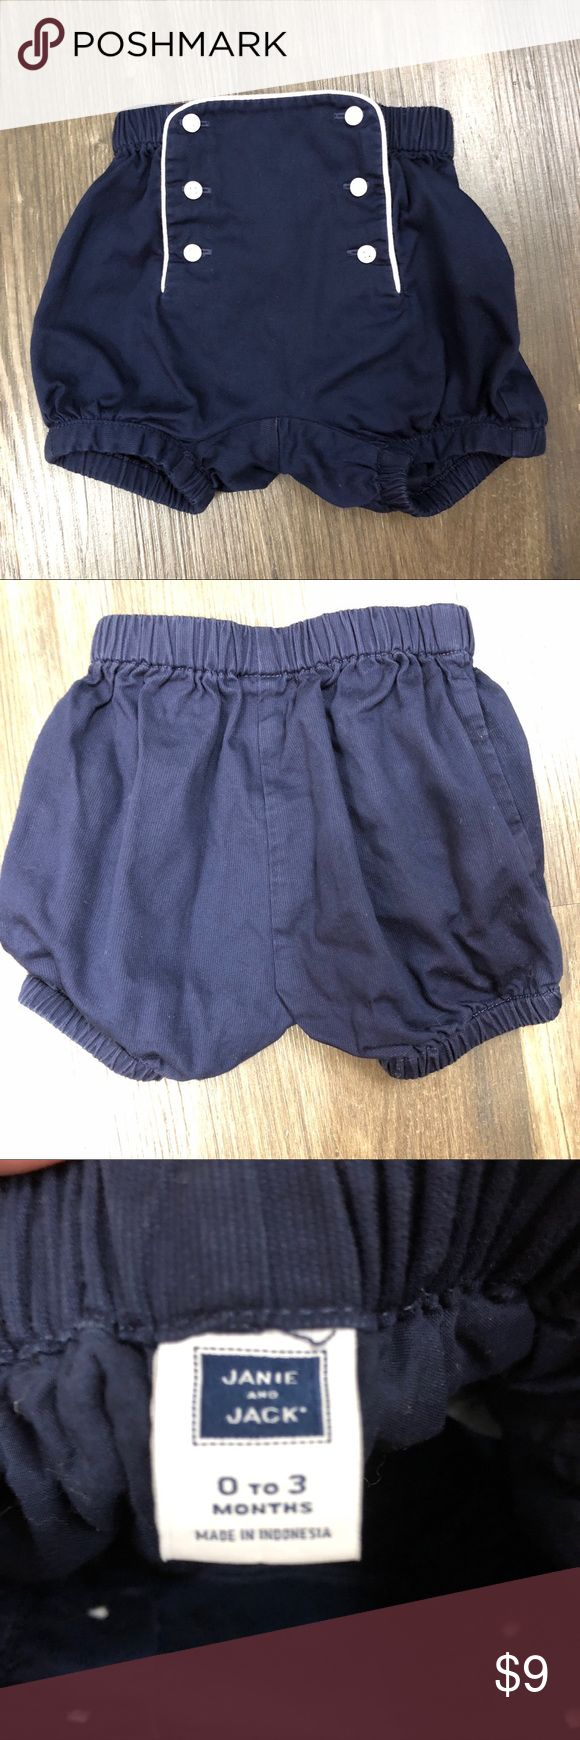 Janie and Jack navy and white sailor shorts Darling Janie and Jack navy and white sailor shorts. Very good preloved condition, very minor fading from washing. Janie and Jack Bottoms Shorts